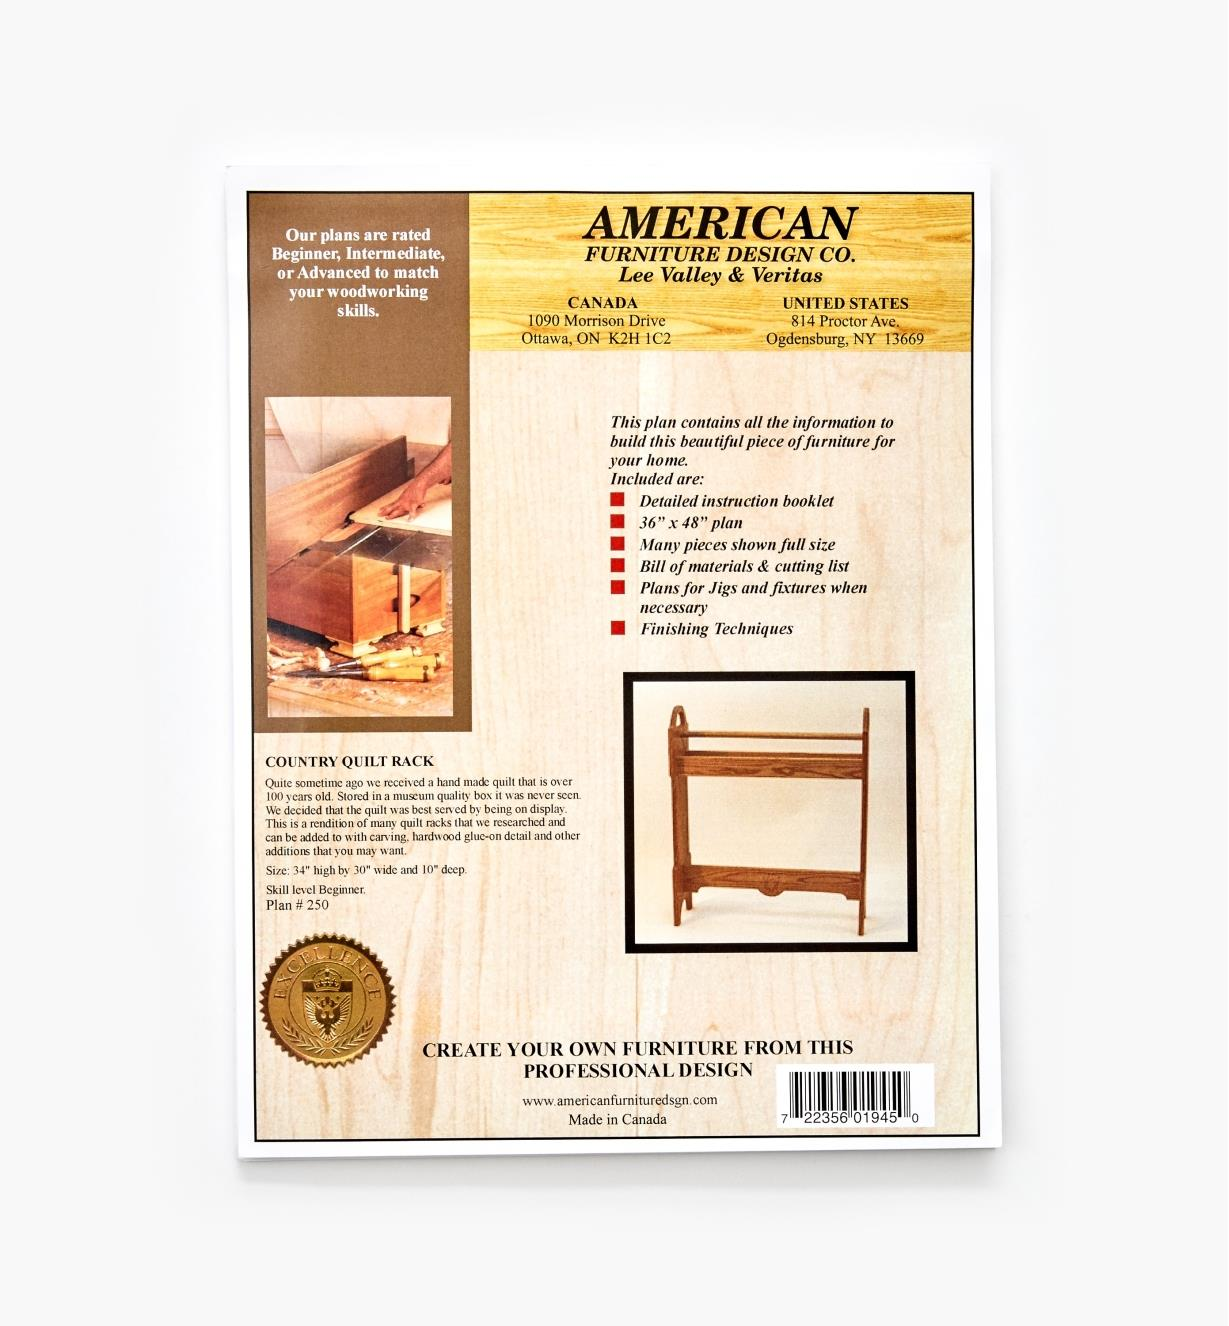 01L5090 - Country Quilt Rack Plan